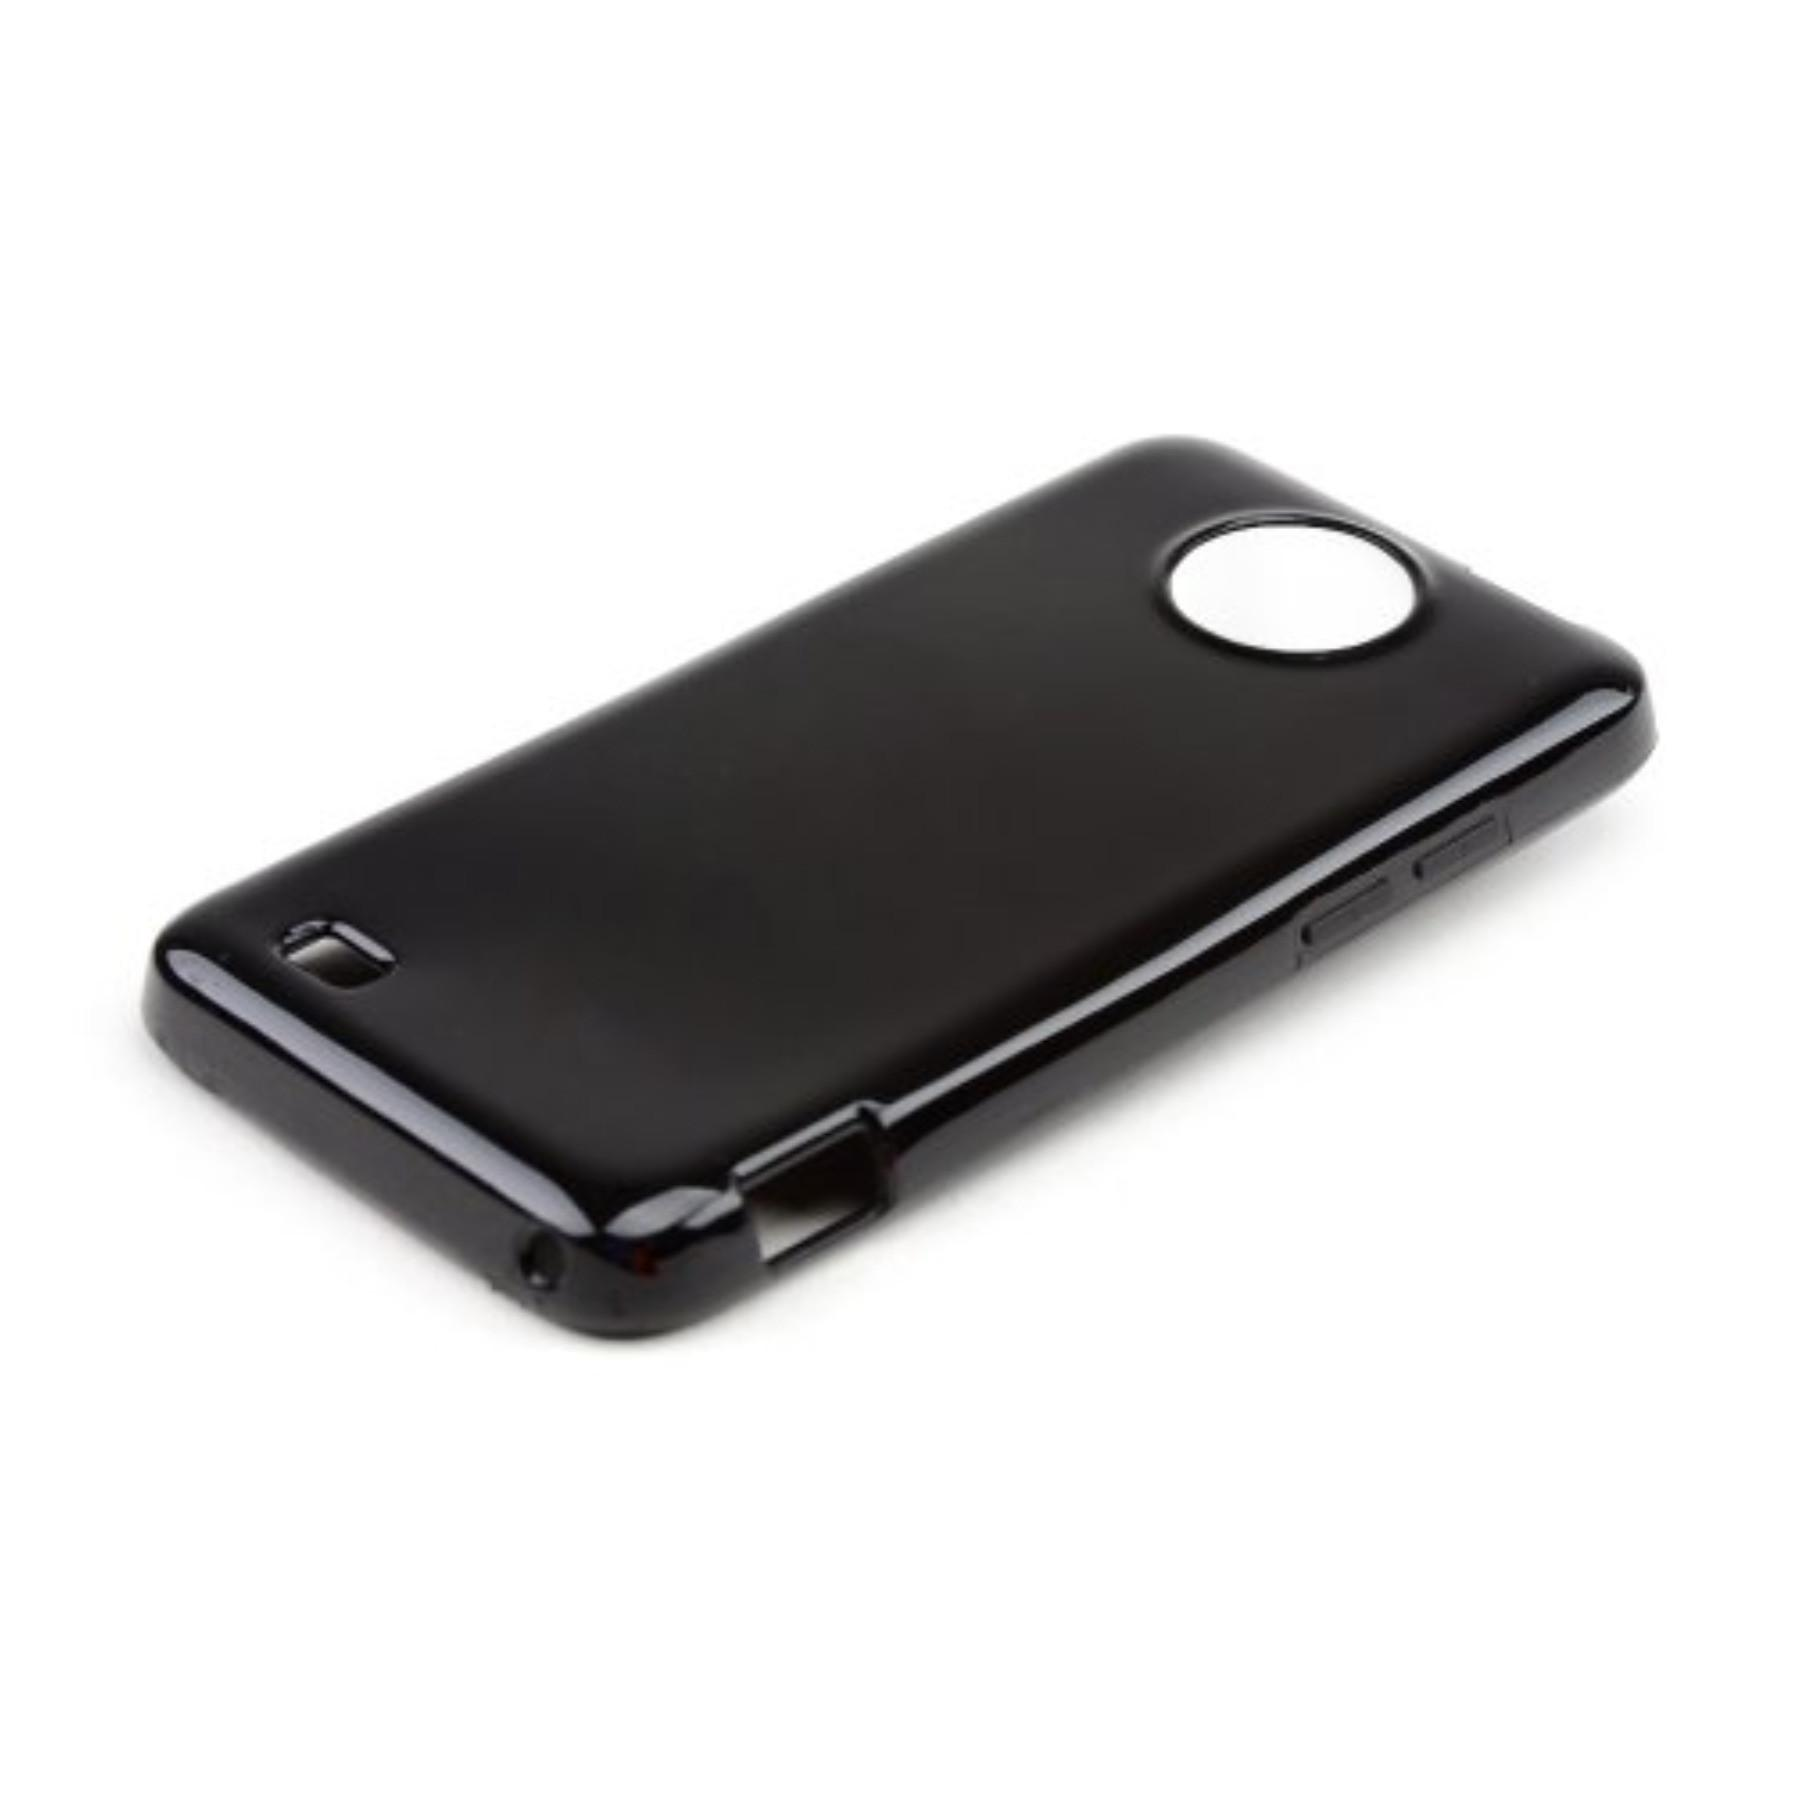 Karendeals Black Zte Vital Tpu Gel Case Cover Anti Slip